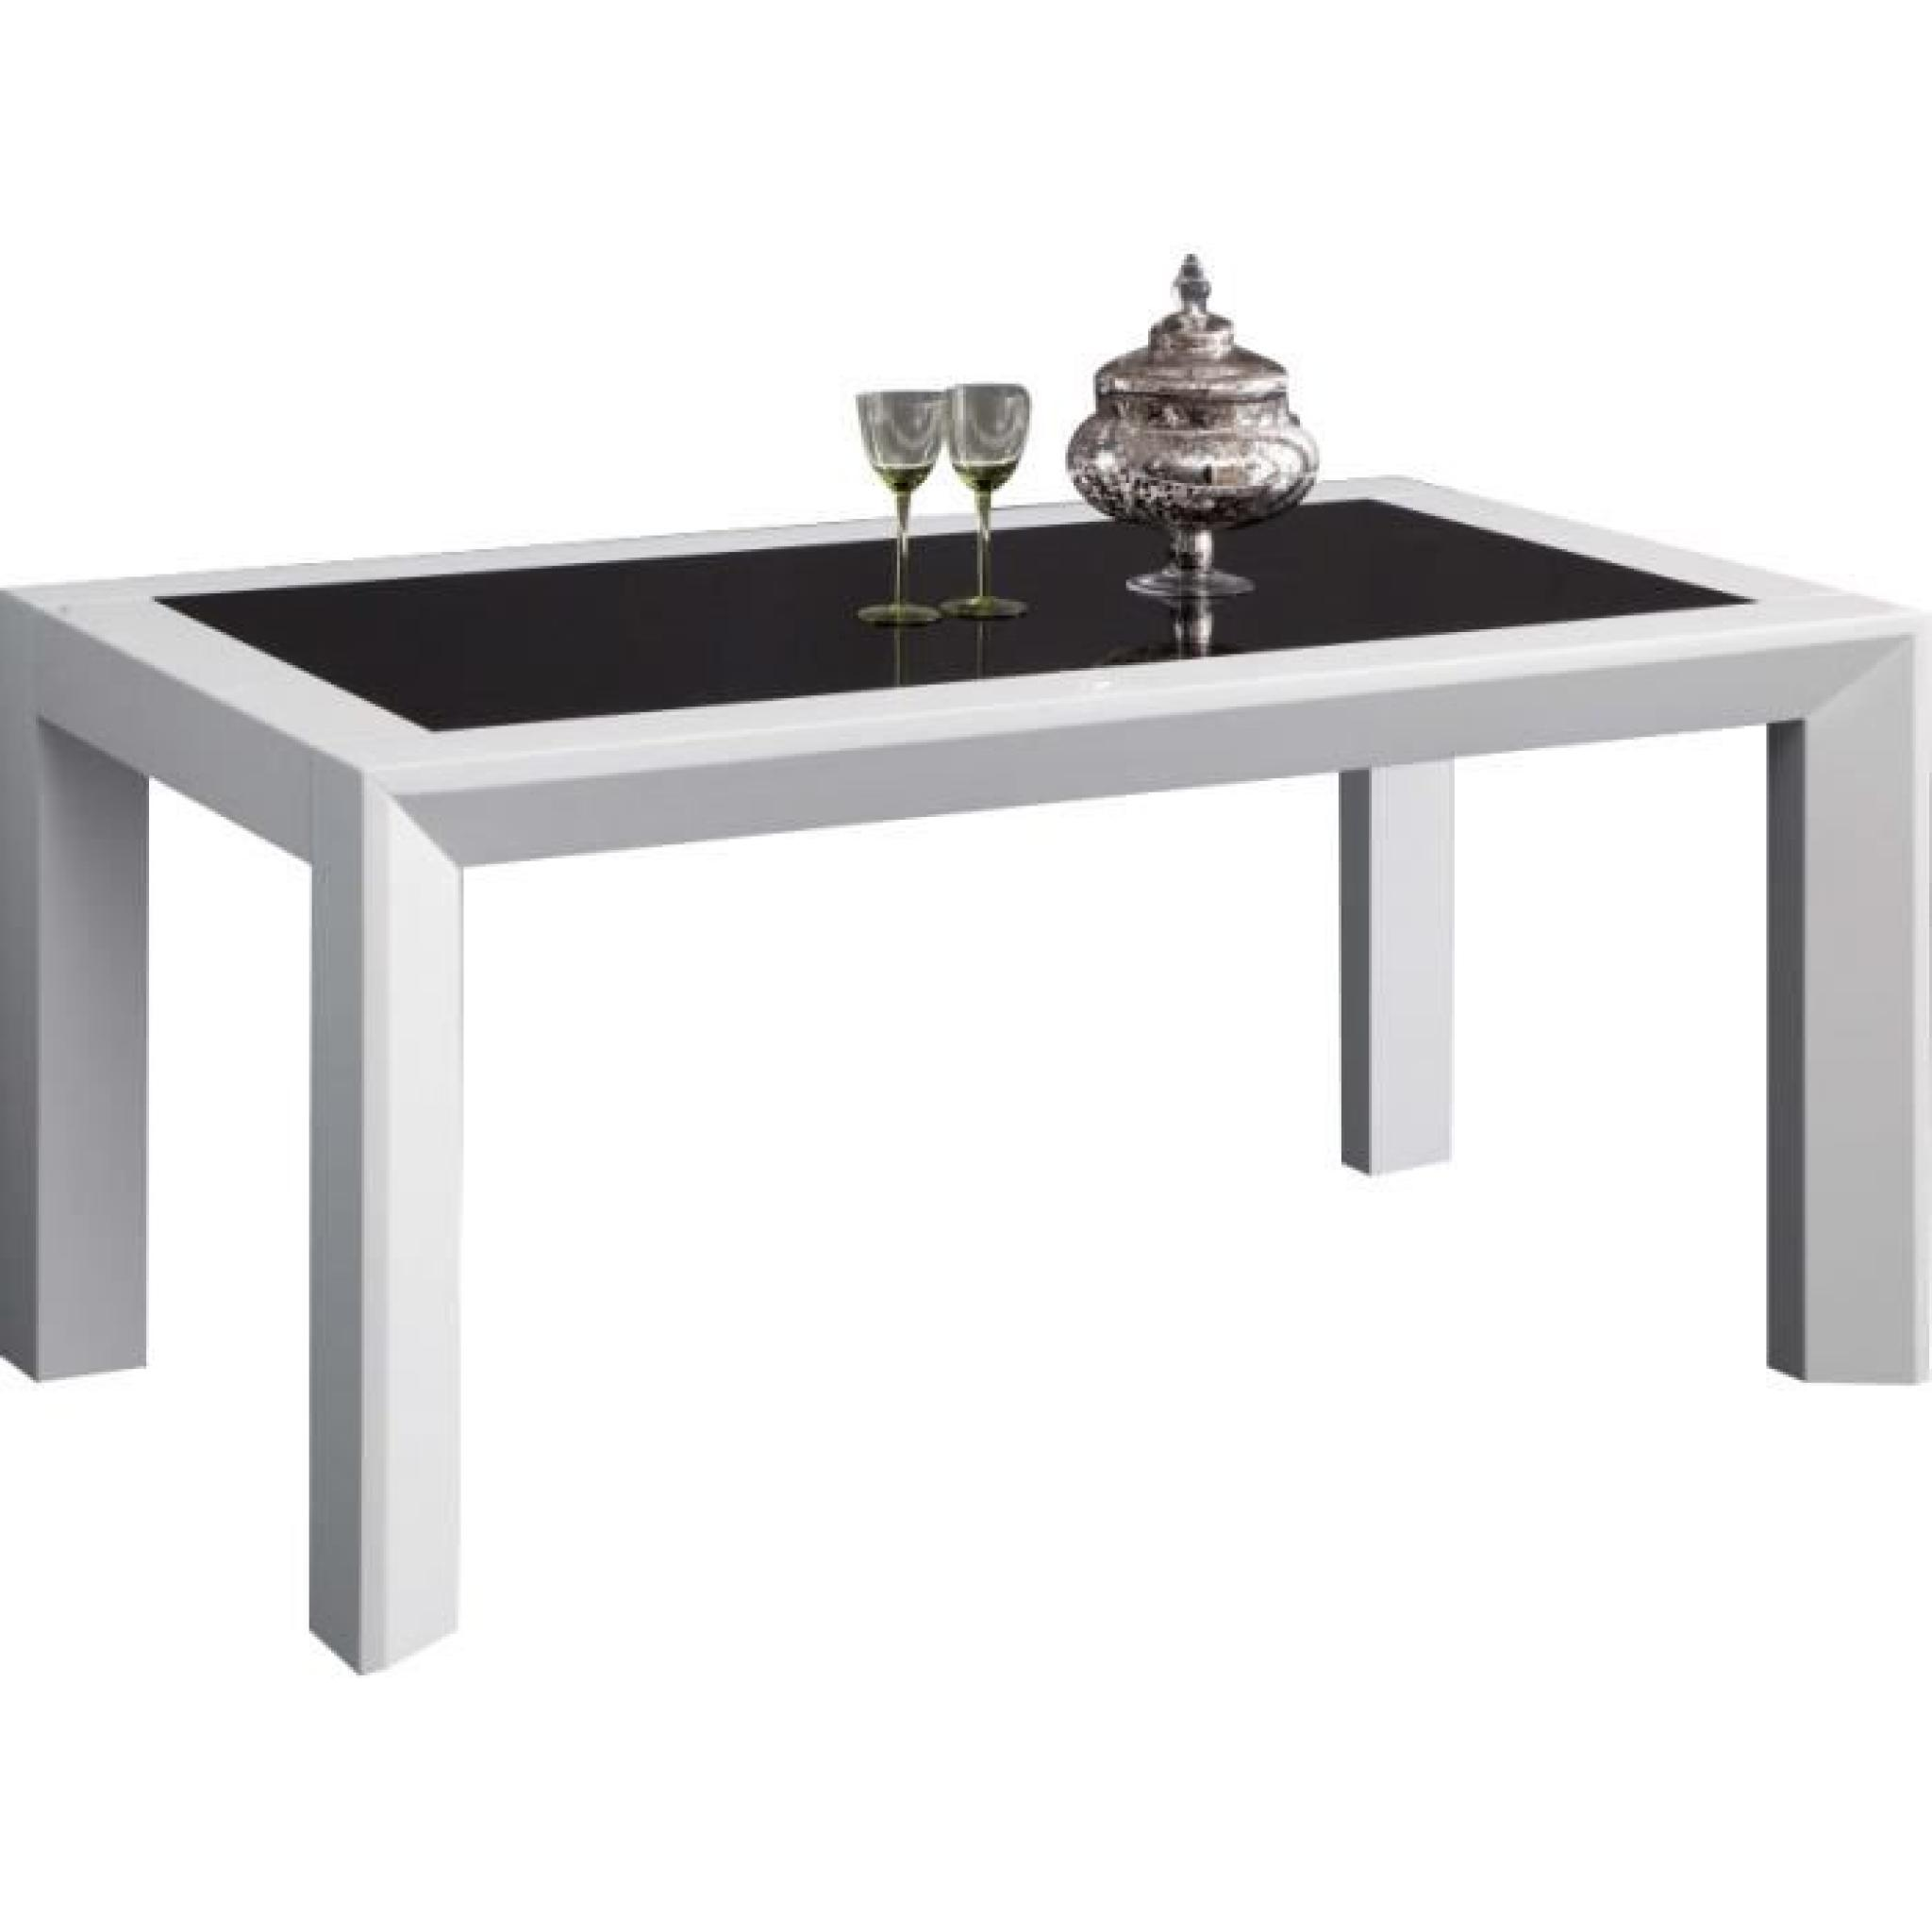 Table Salle A Manger Blanc Of Table Salle A Manger Blanc Maison Design